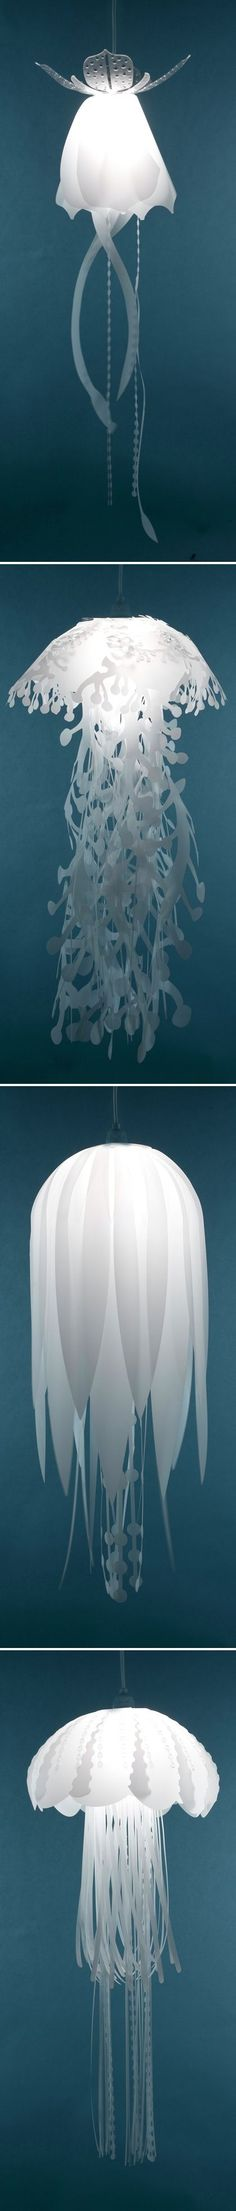 Jelly Fish Hanging Lamps